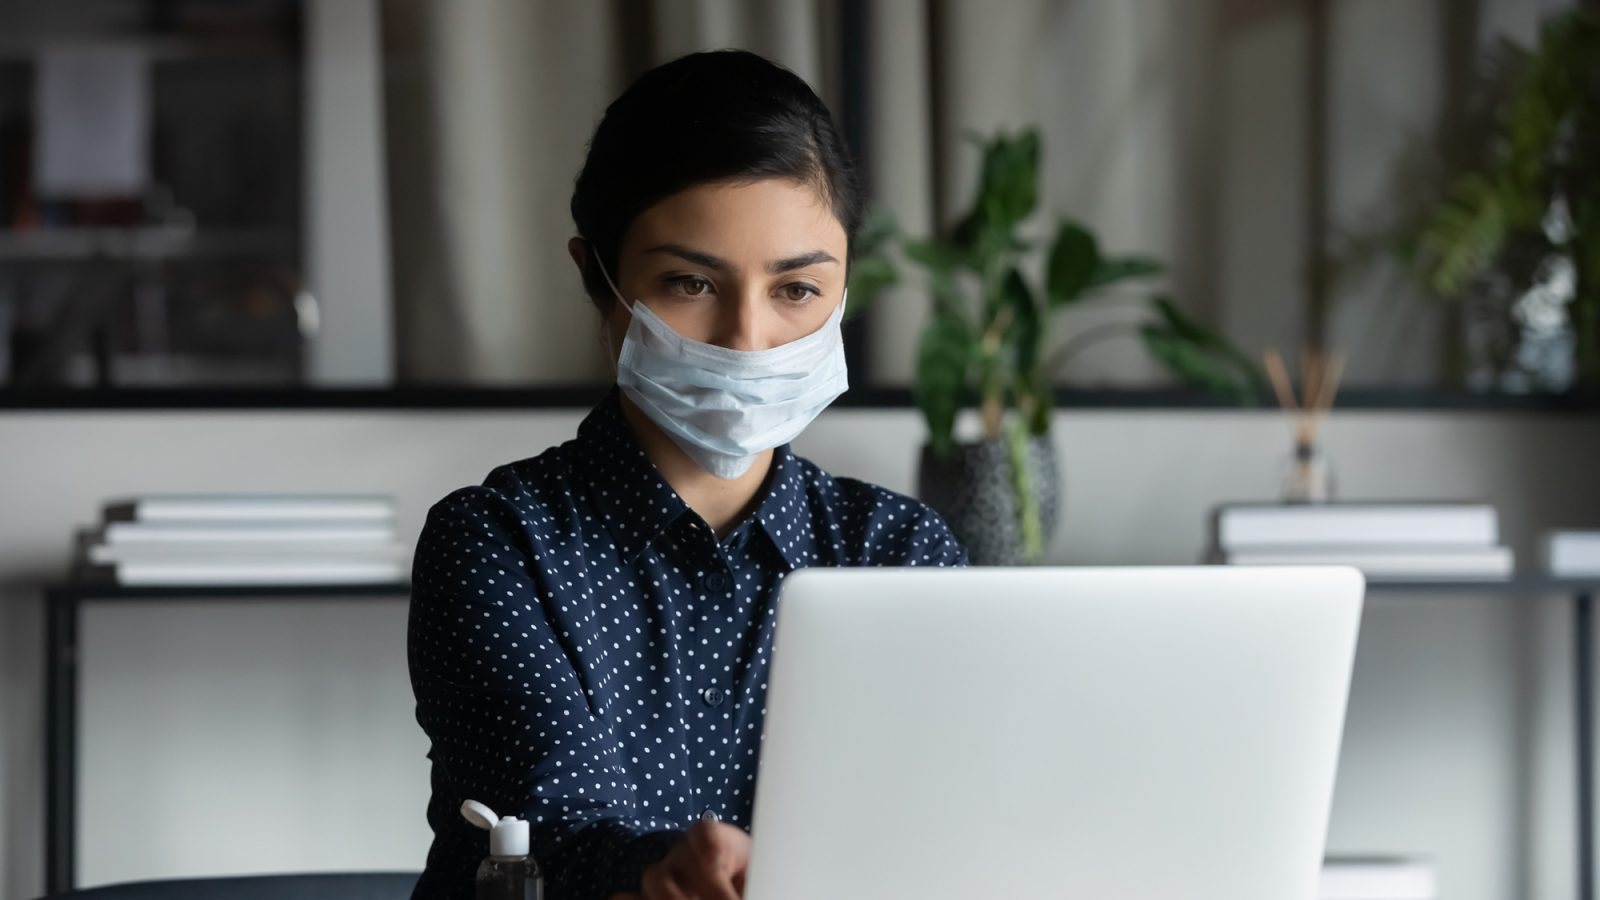 Young woman sitting at a desk wearing a mask and working on a computer